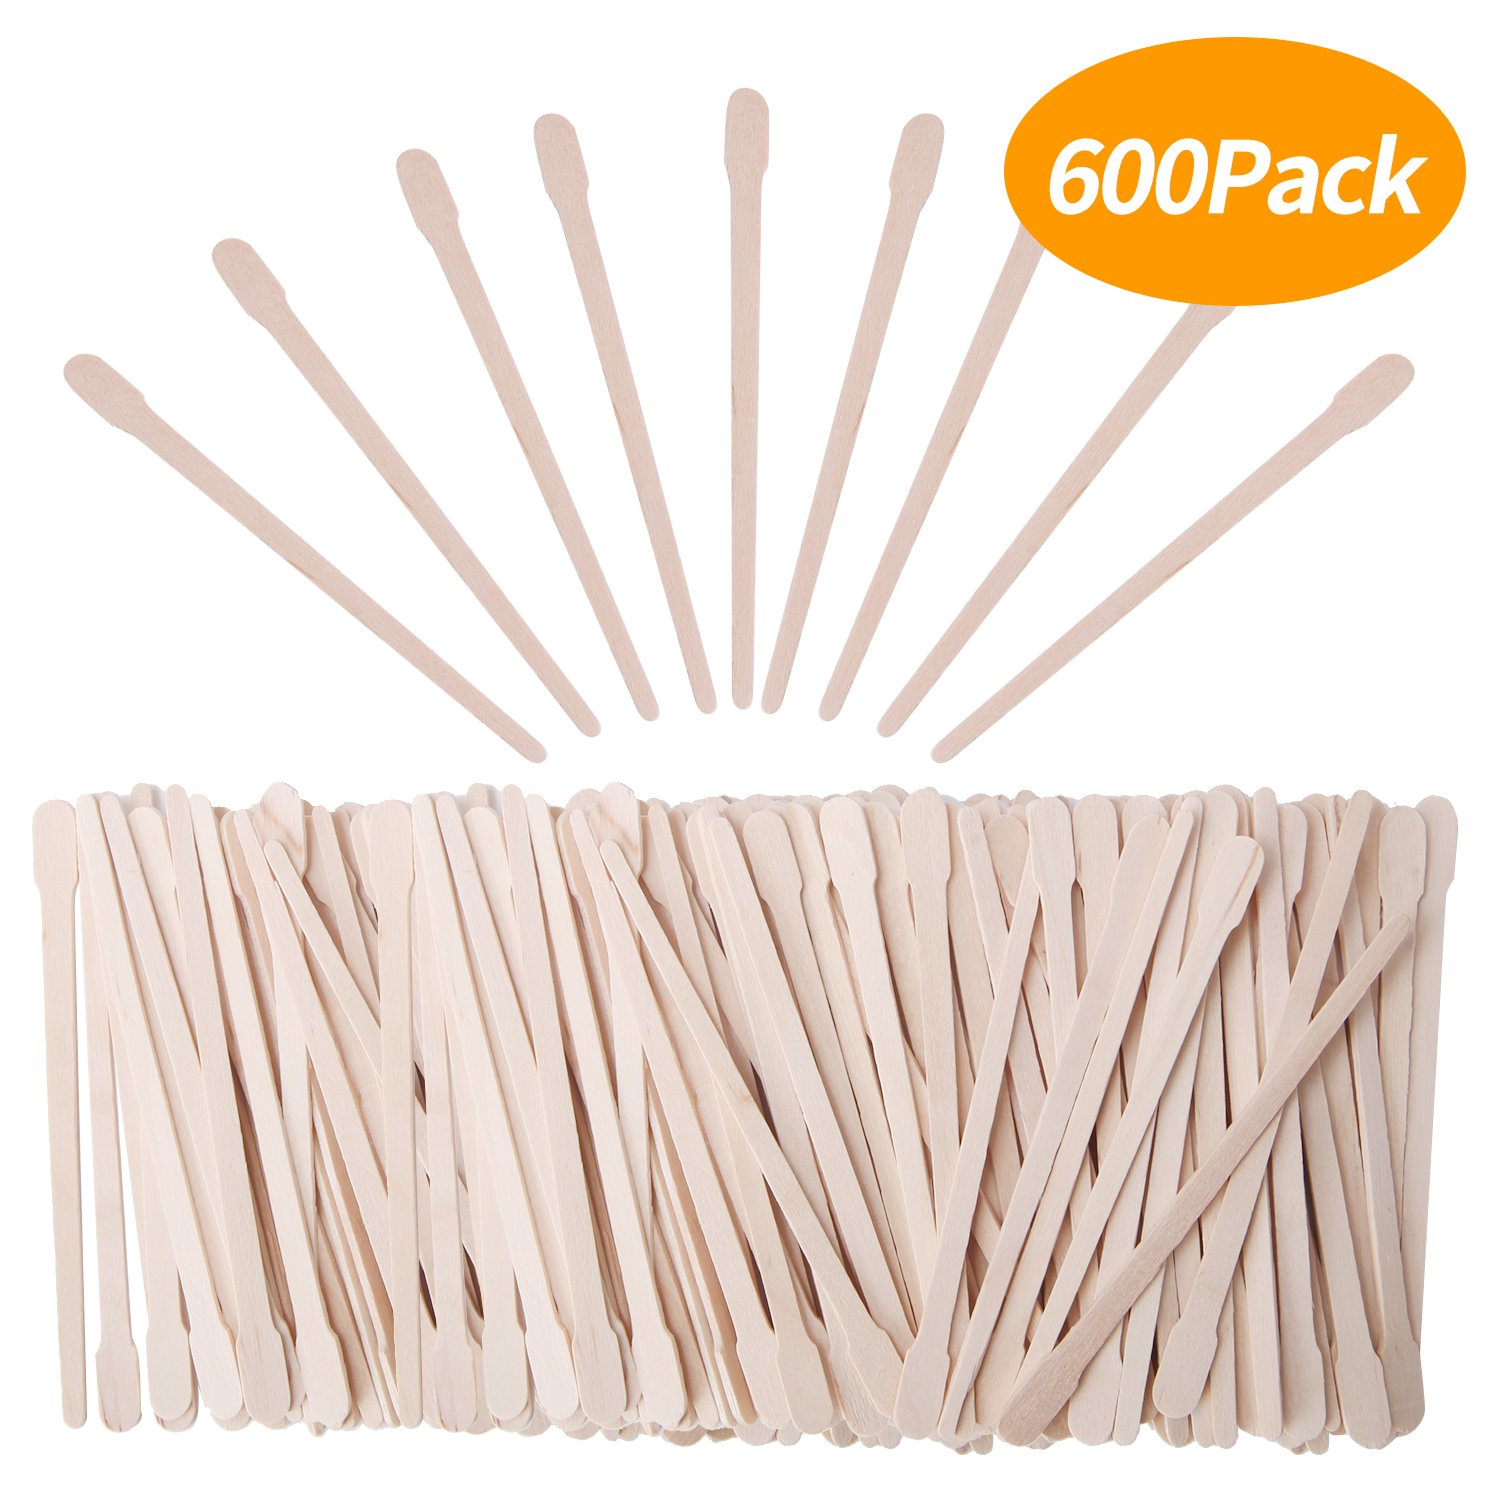 Senkary 600 Pieces Wooden Waxing Sticks Wax Sticks Wax Applicator Sticks Wax Spatulas Wood Craft Sticks Small for Hair Eyebrow Nose Removal (With Handle)